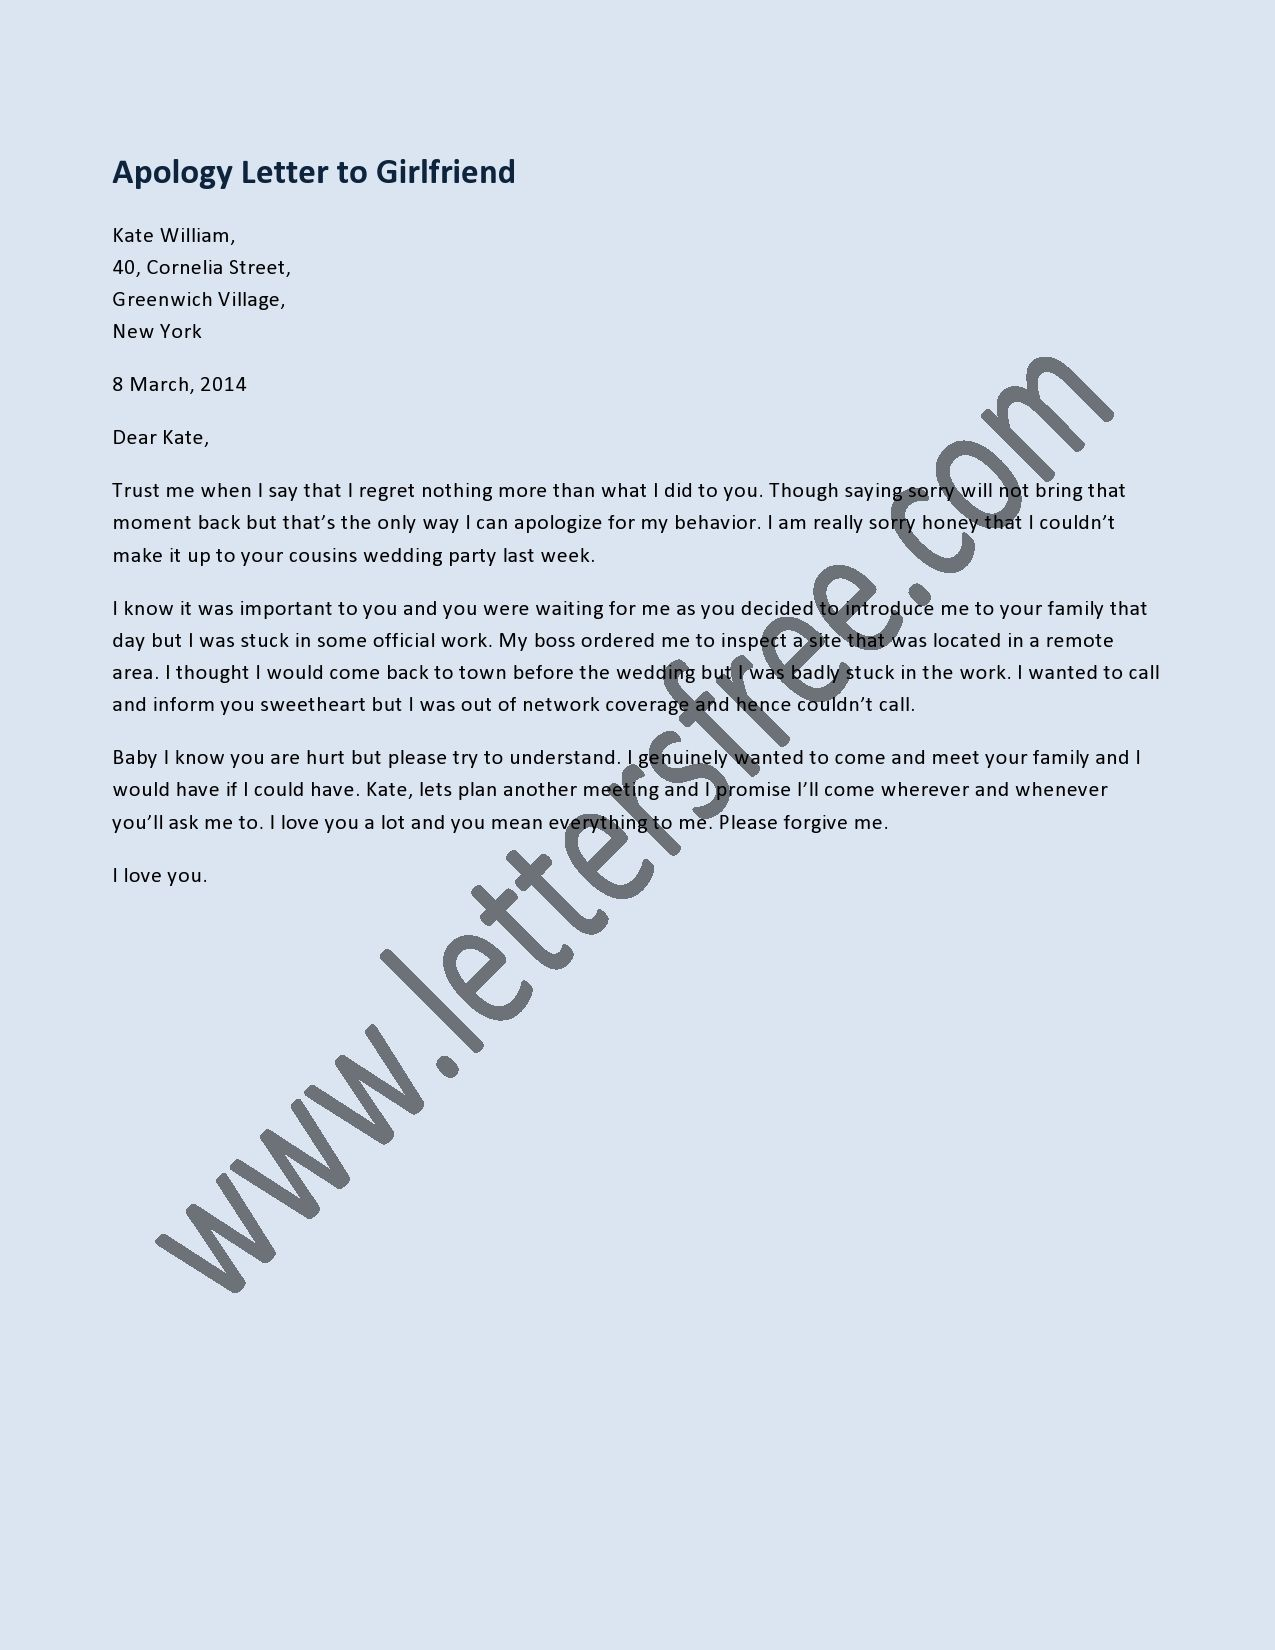 Sample of Apology Letter to Girlfriend, Sorry Letter Example